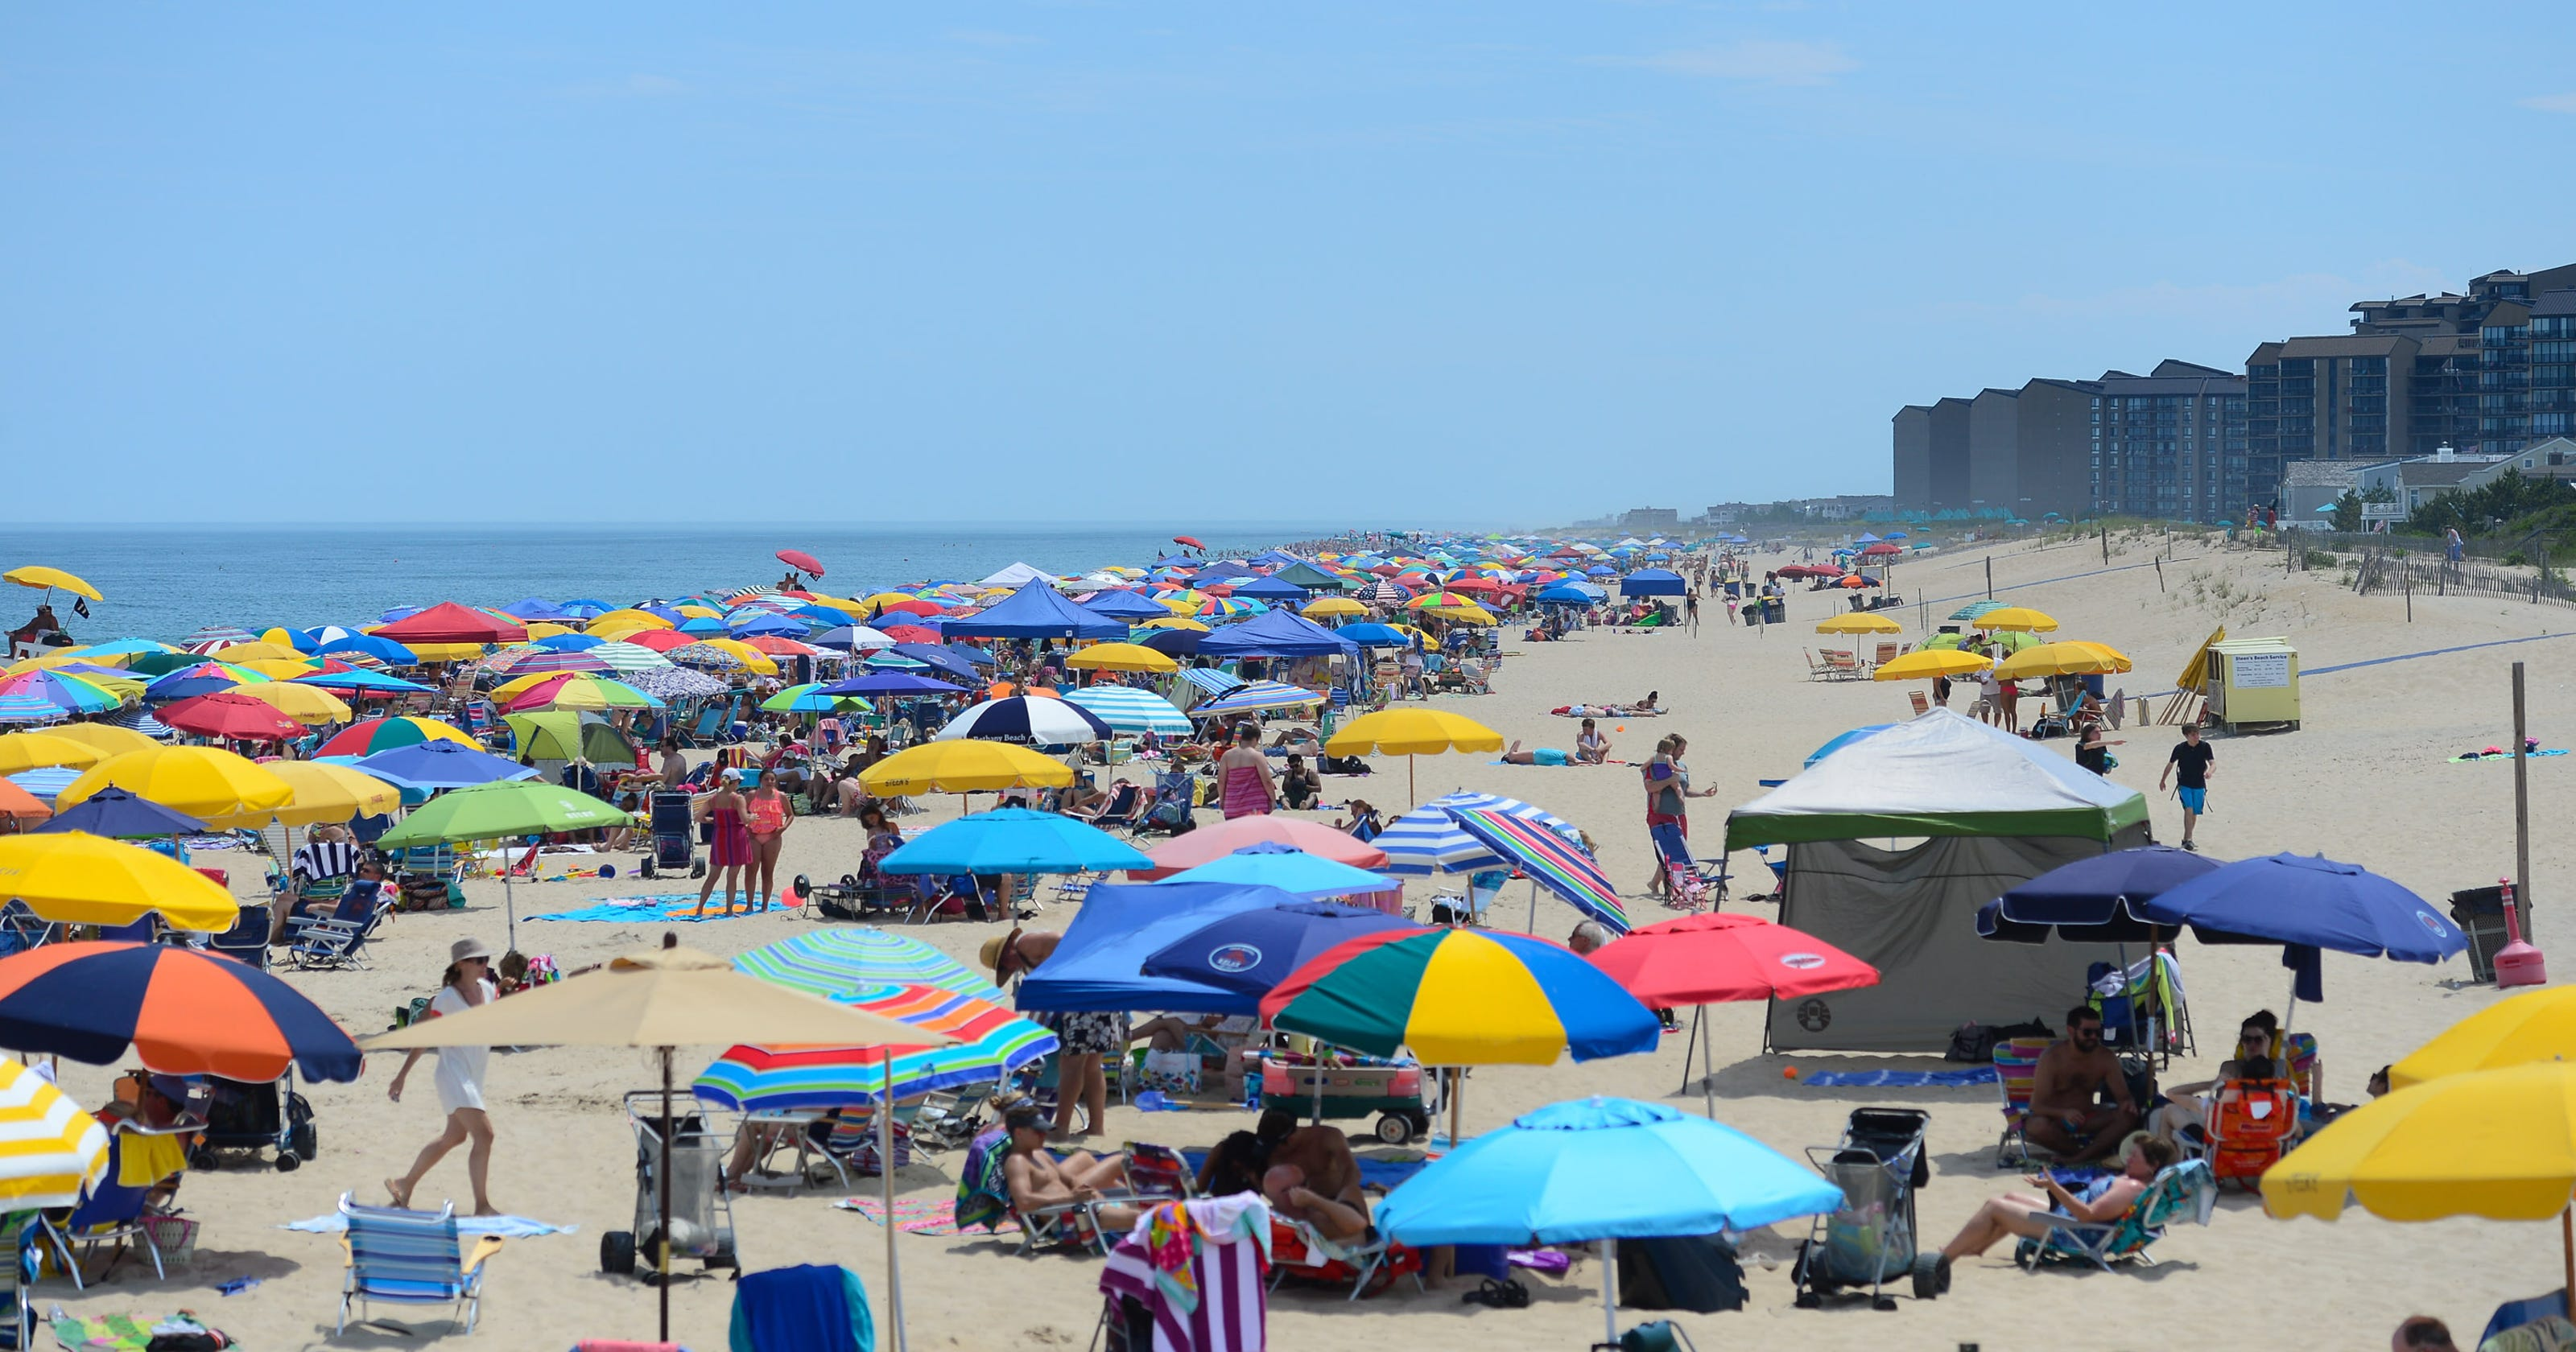 b2547617f How Delaware beach rules could impact your Memorial Day weekend